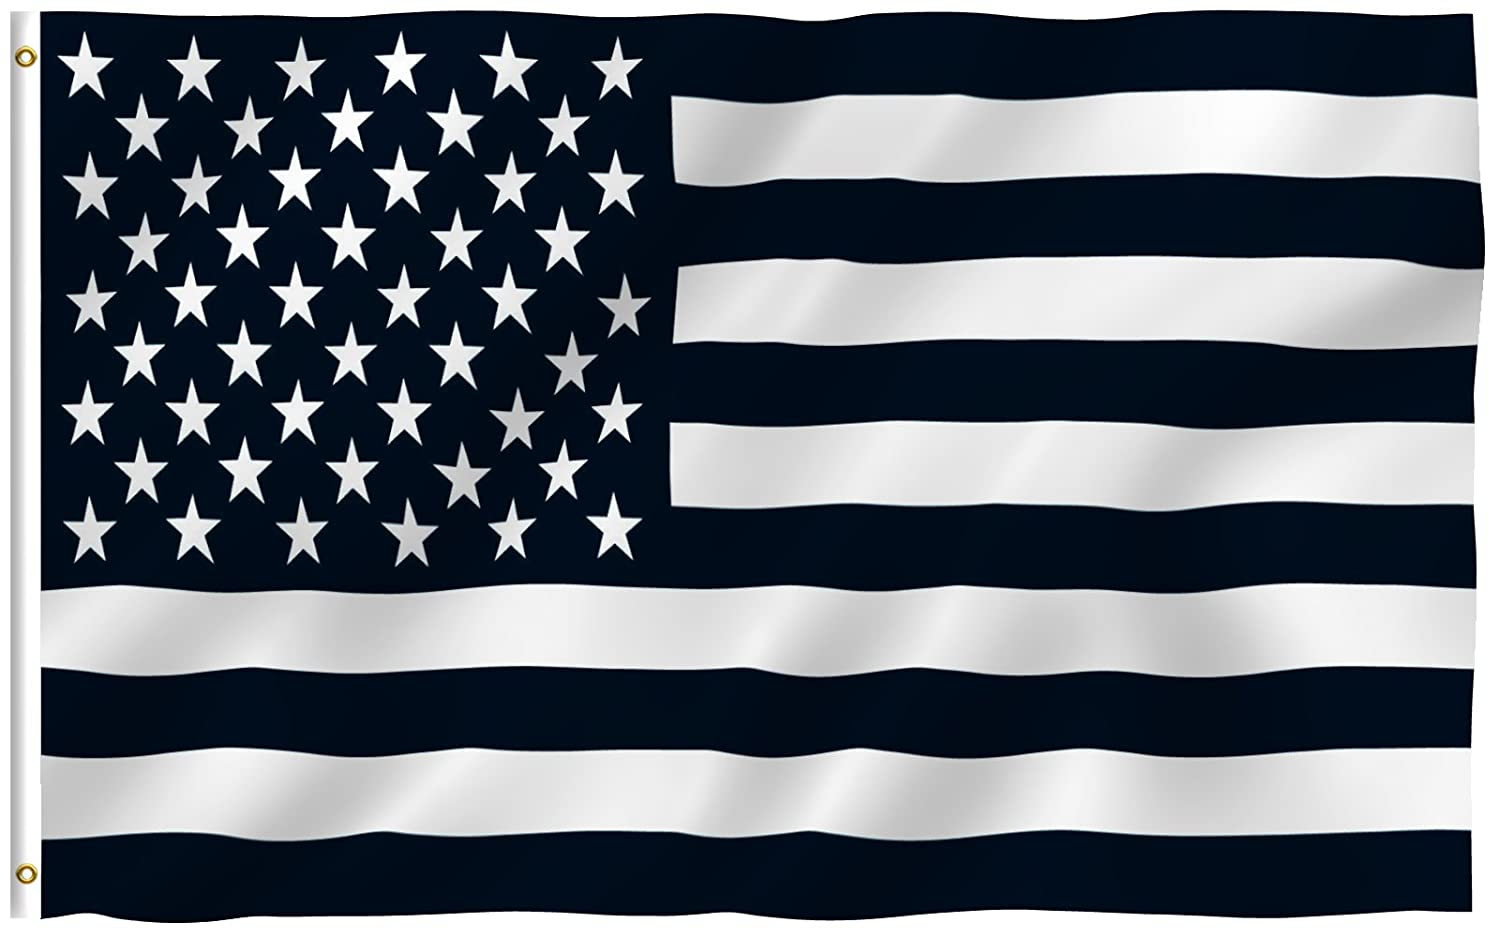 Amazon 3x5 black and white american flag military nascar amazon 3x5 black and white american flag military nascar army outdoor flags garden outdoor biocorpaavc Image collections